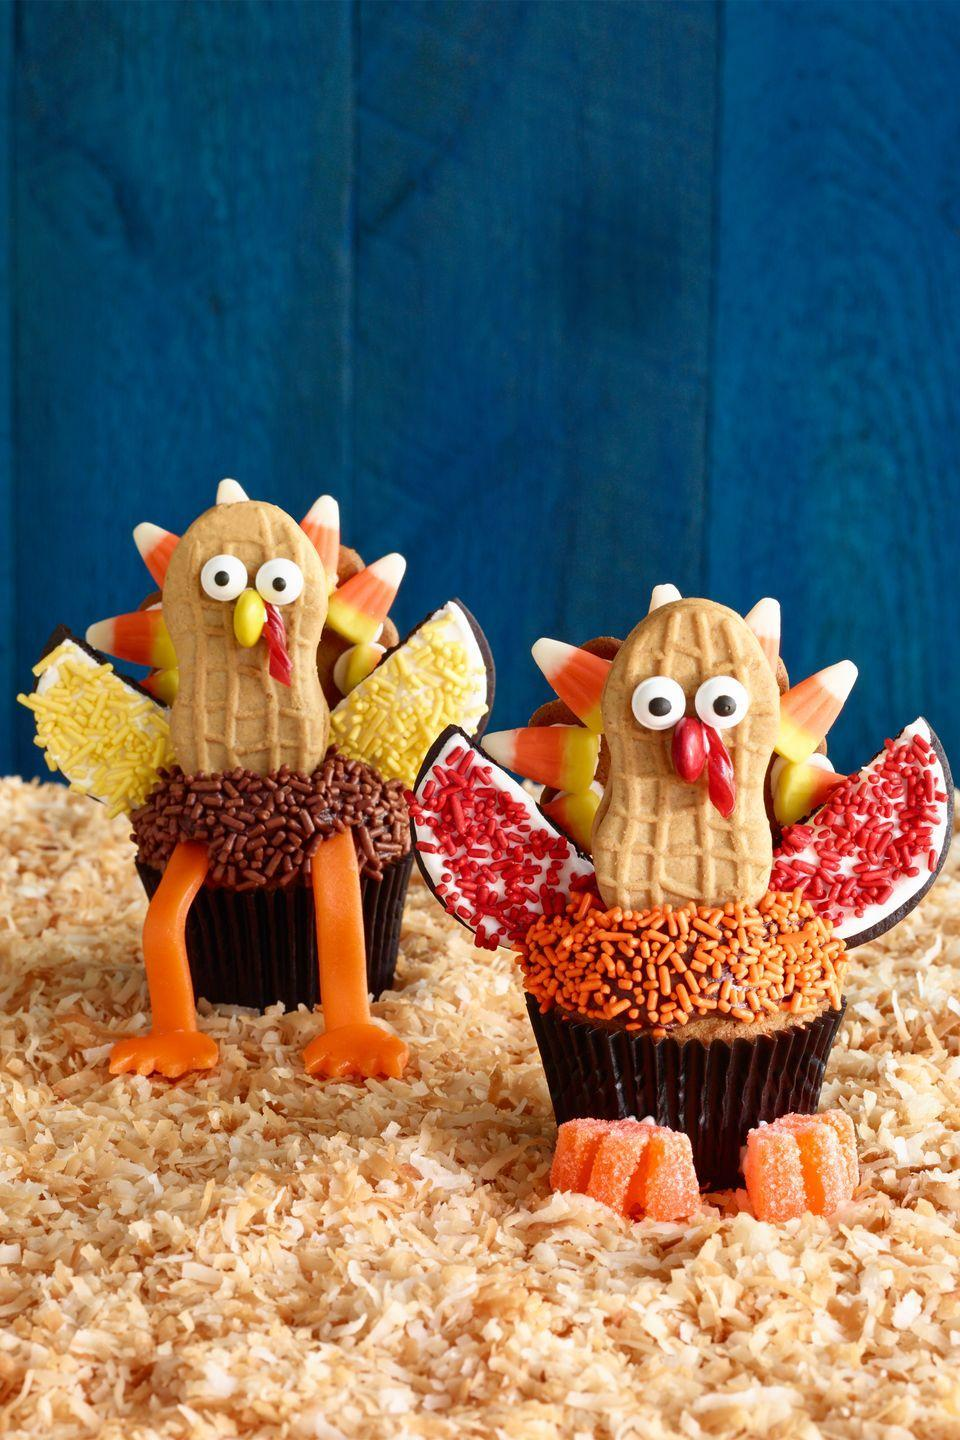 "<p>These Turkey Day treats are almost too cute to gobble up.</p><p><strong><em><a href=""https://www.womansday.com/food-recipes/food-drinks/recipes/a12466/turkey-cupcakes-recipe-wdy1114/"" rel=""nofollow noopener"" target=""_blank"" data-ylk=""slk:Get the Turkey Cupcakes recipe."" class=""link rapid-noclick-resp"">Get the Turkey Cupcakes recipe. </a></em></strong></p>"